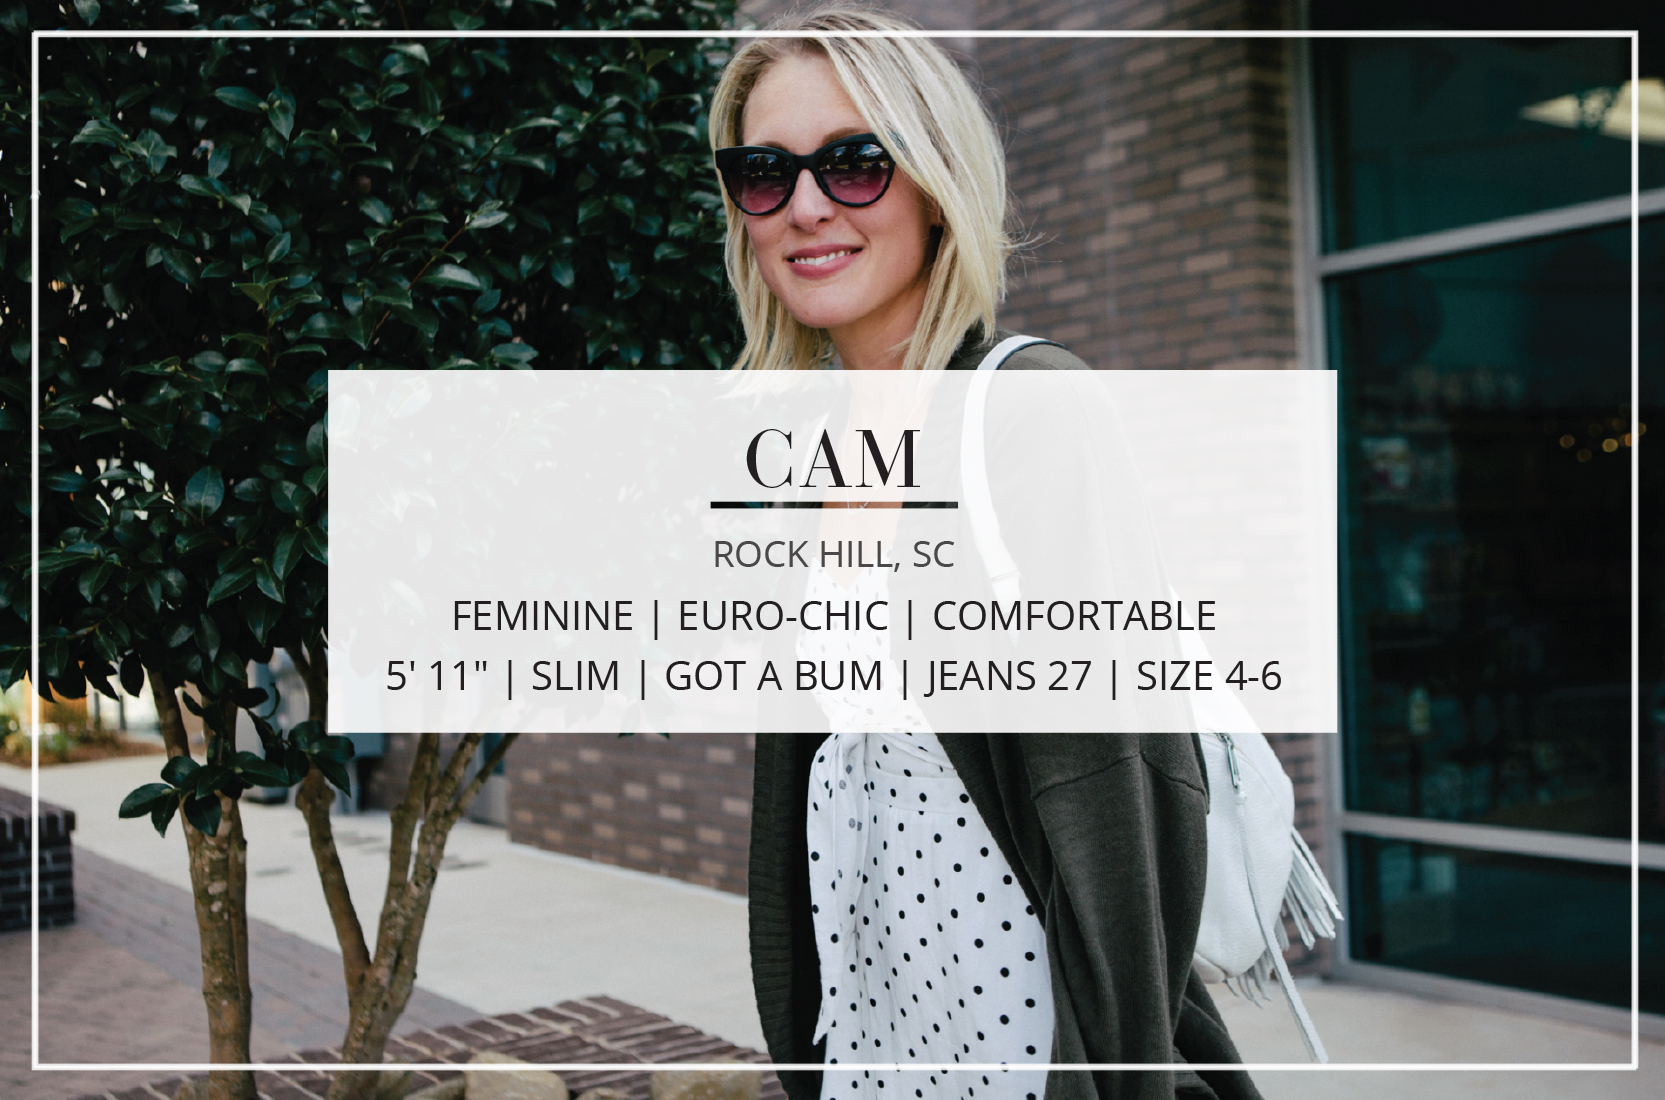 A contributor at The Mom Edit, Cam's style is feminine, euro-chic & comfortable… – emphasis on comfortable.